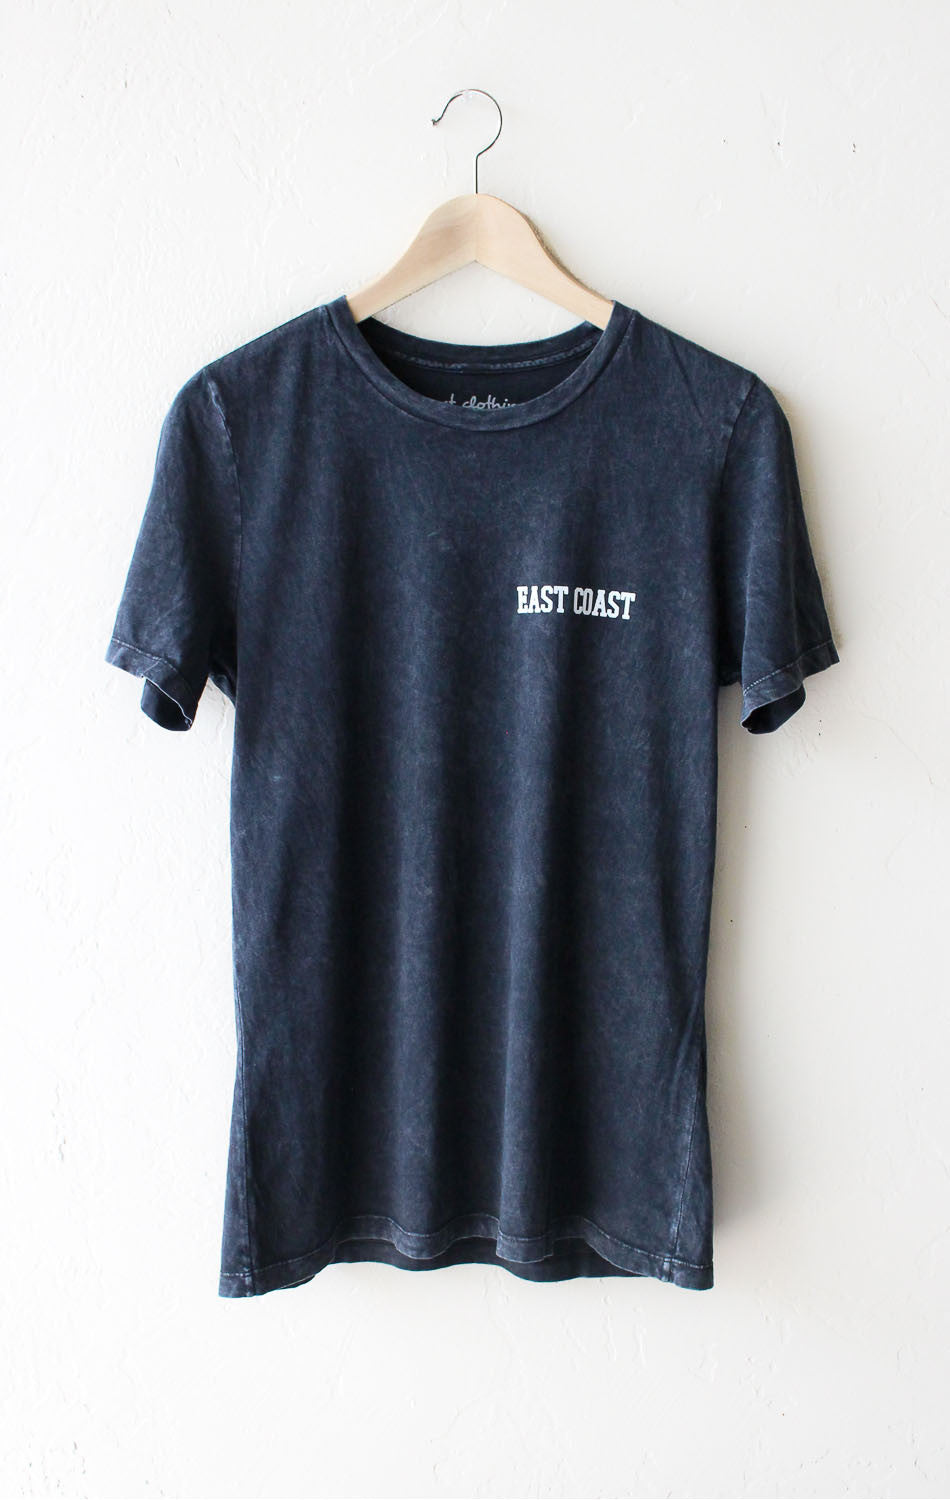 East Coast Relaxed Tee - Acid Wash Black